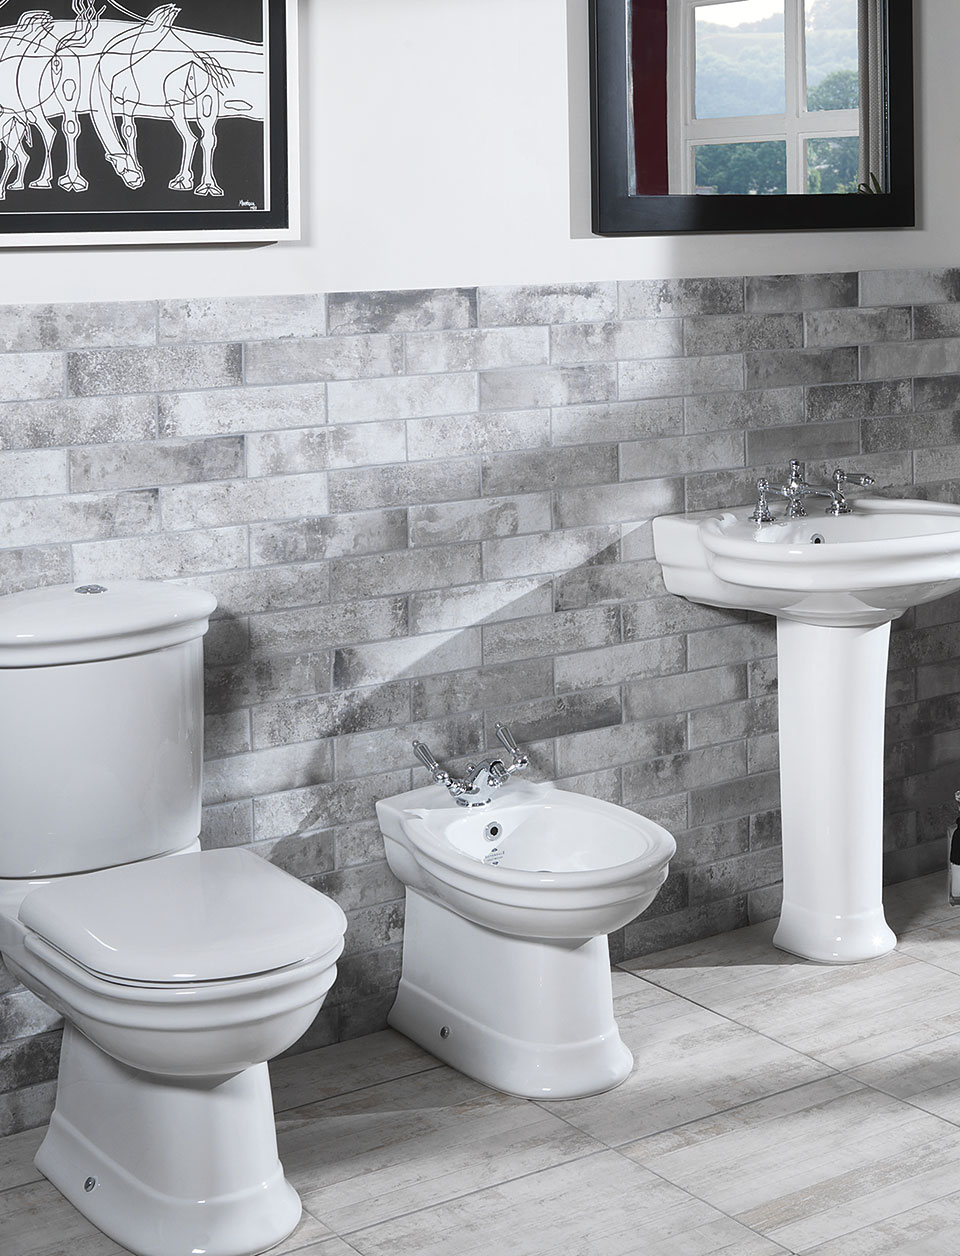 Silverdale Bathrooms - Tiles